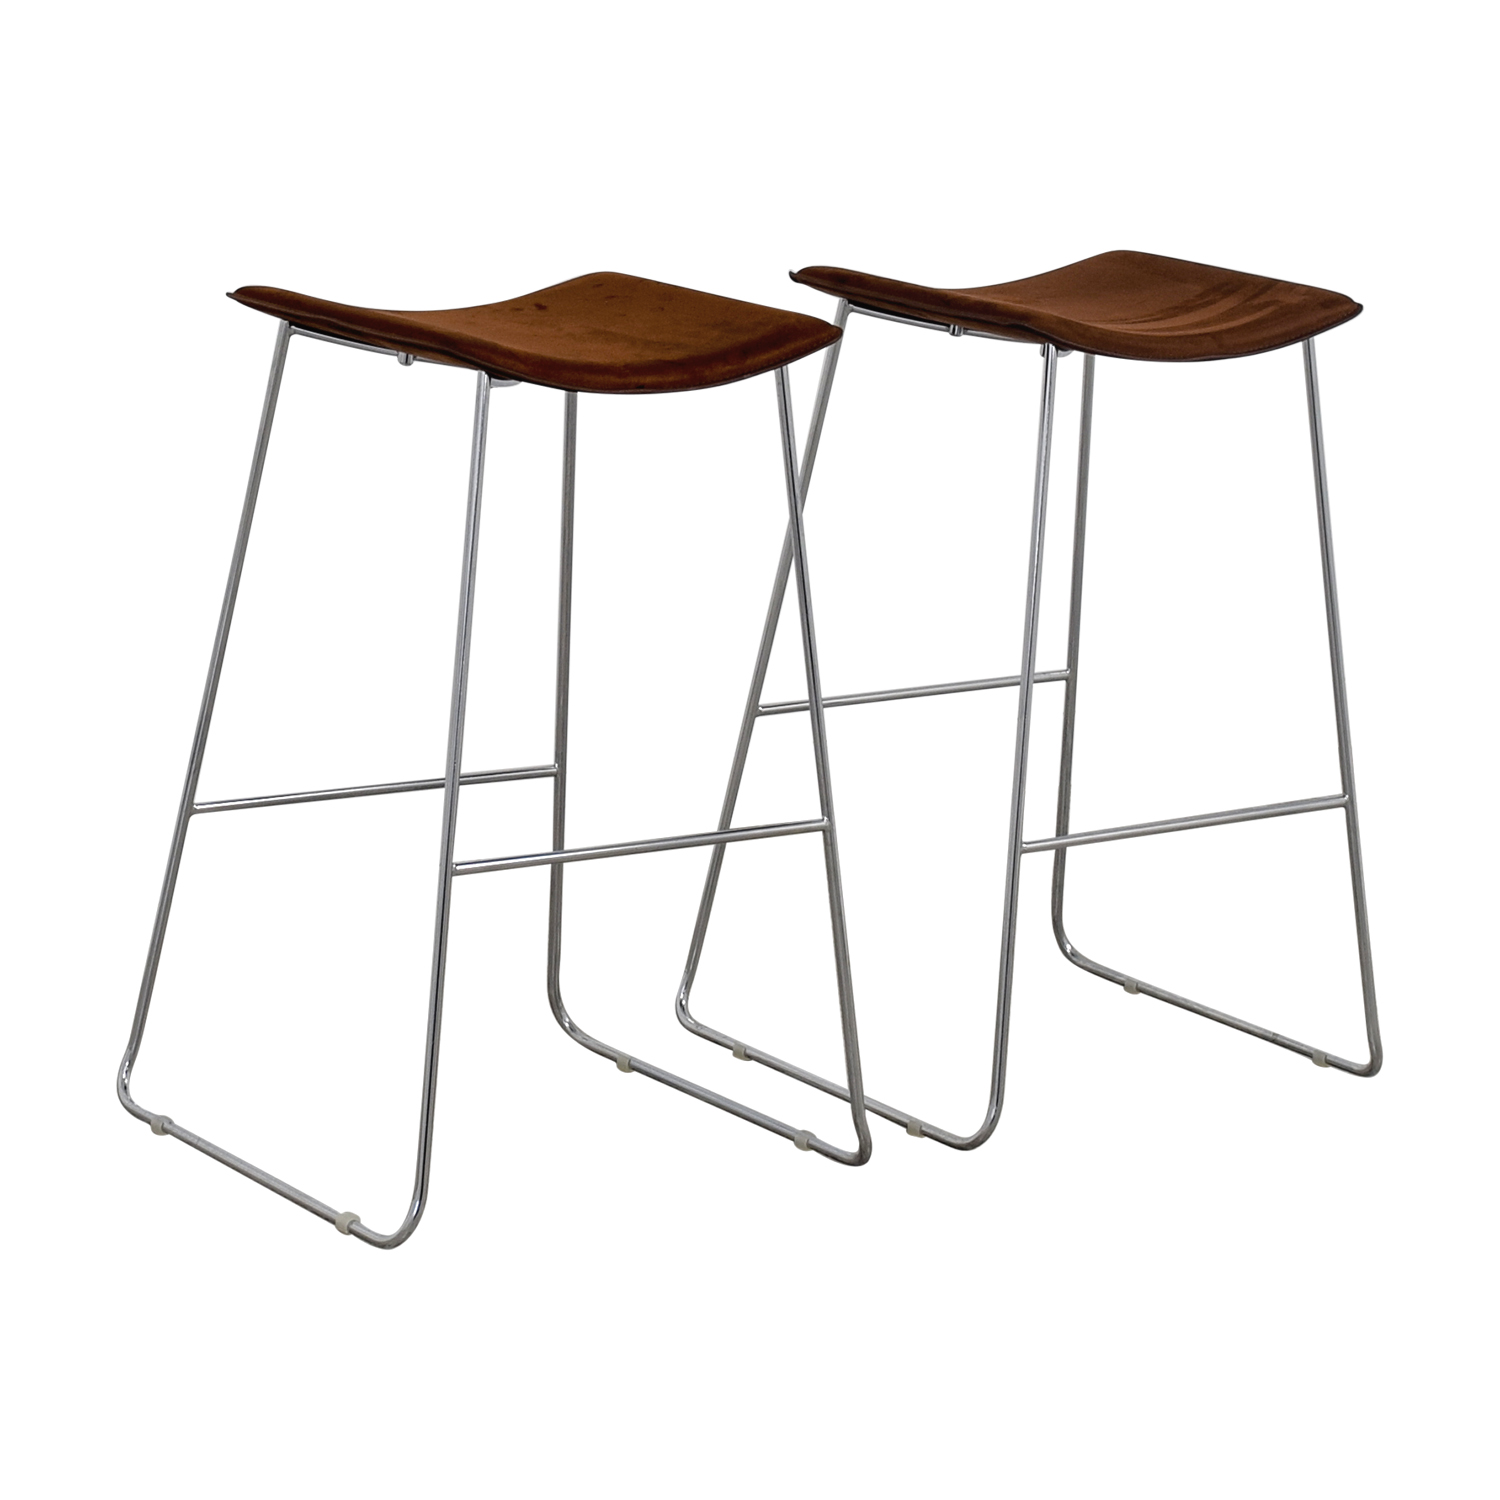 30 Off Cb2 Cb2 Brown Suede Bar Stools Chairs